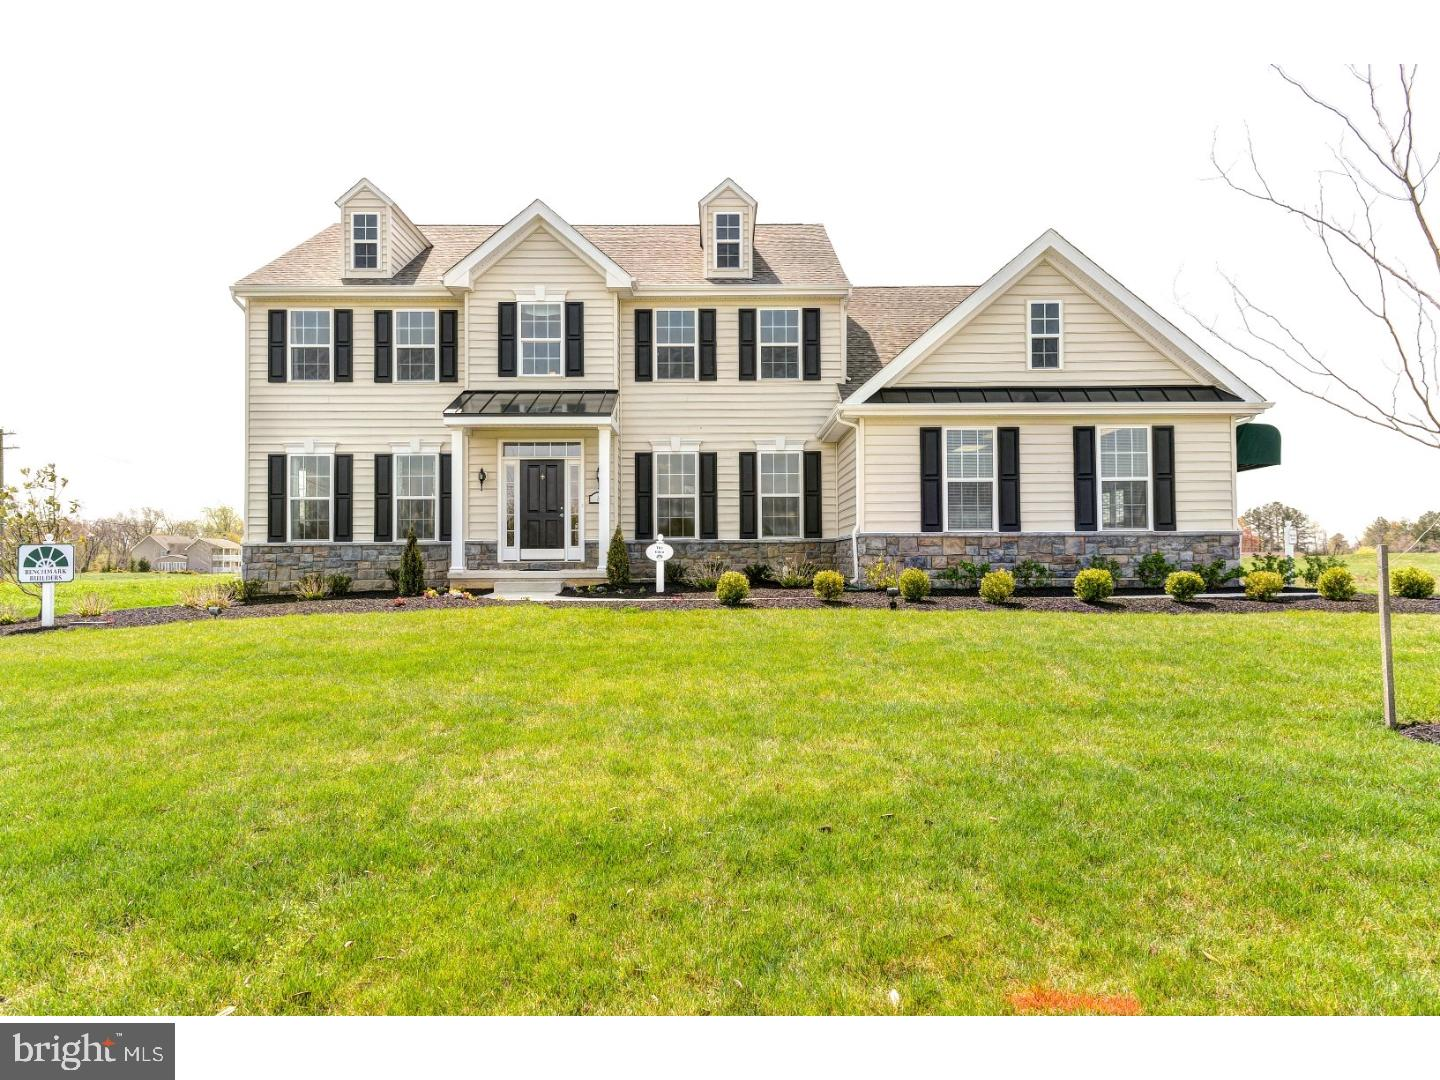 400 REDERICK LANE 19709 - One of Middletown Homes for Sale